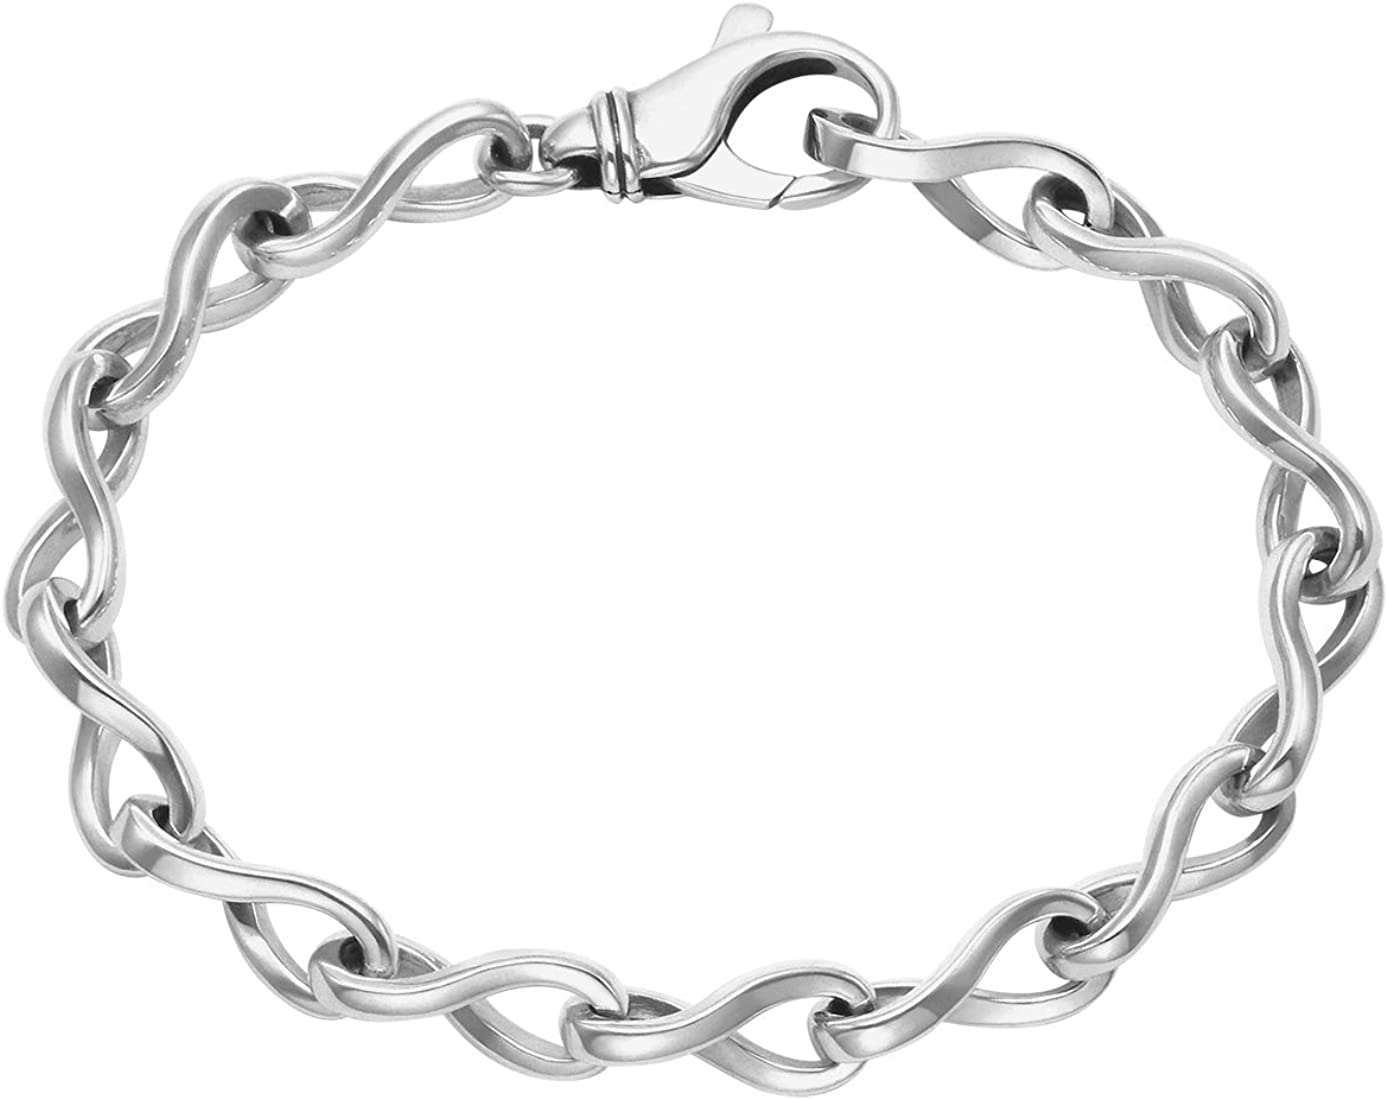 Wild Things Max 85% OFF Indefinitely Men's Sterling Silver Open Oval Twisted Links Bracel